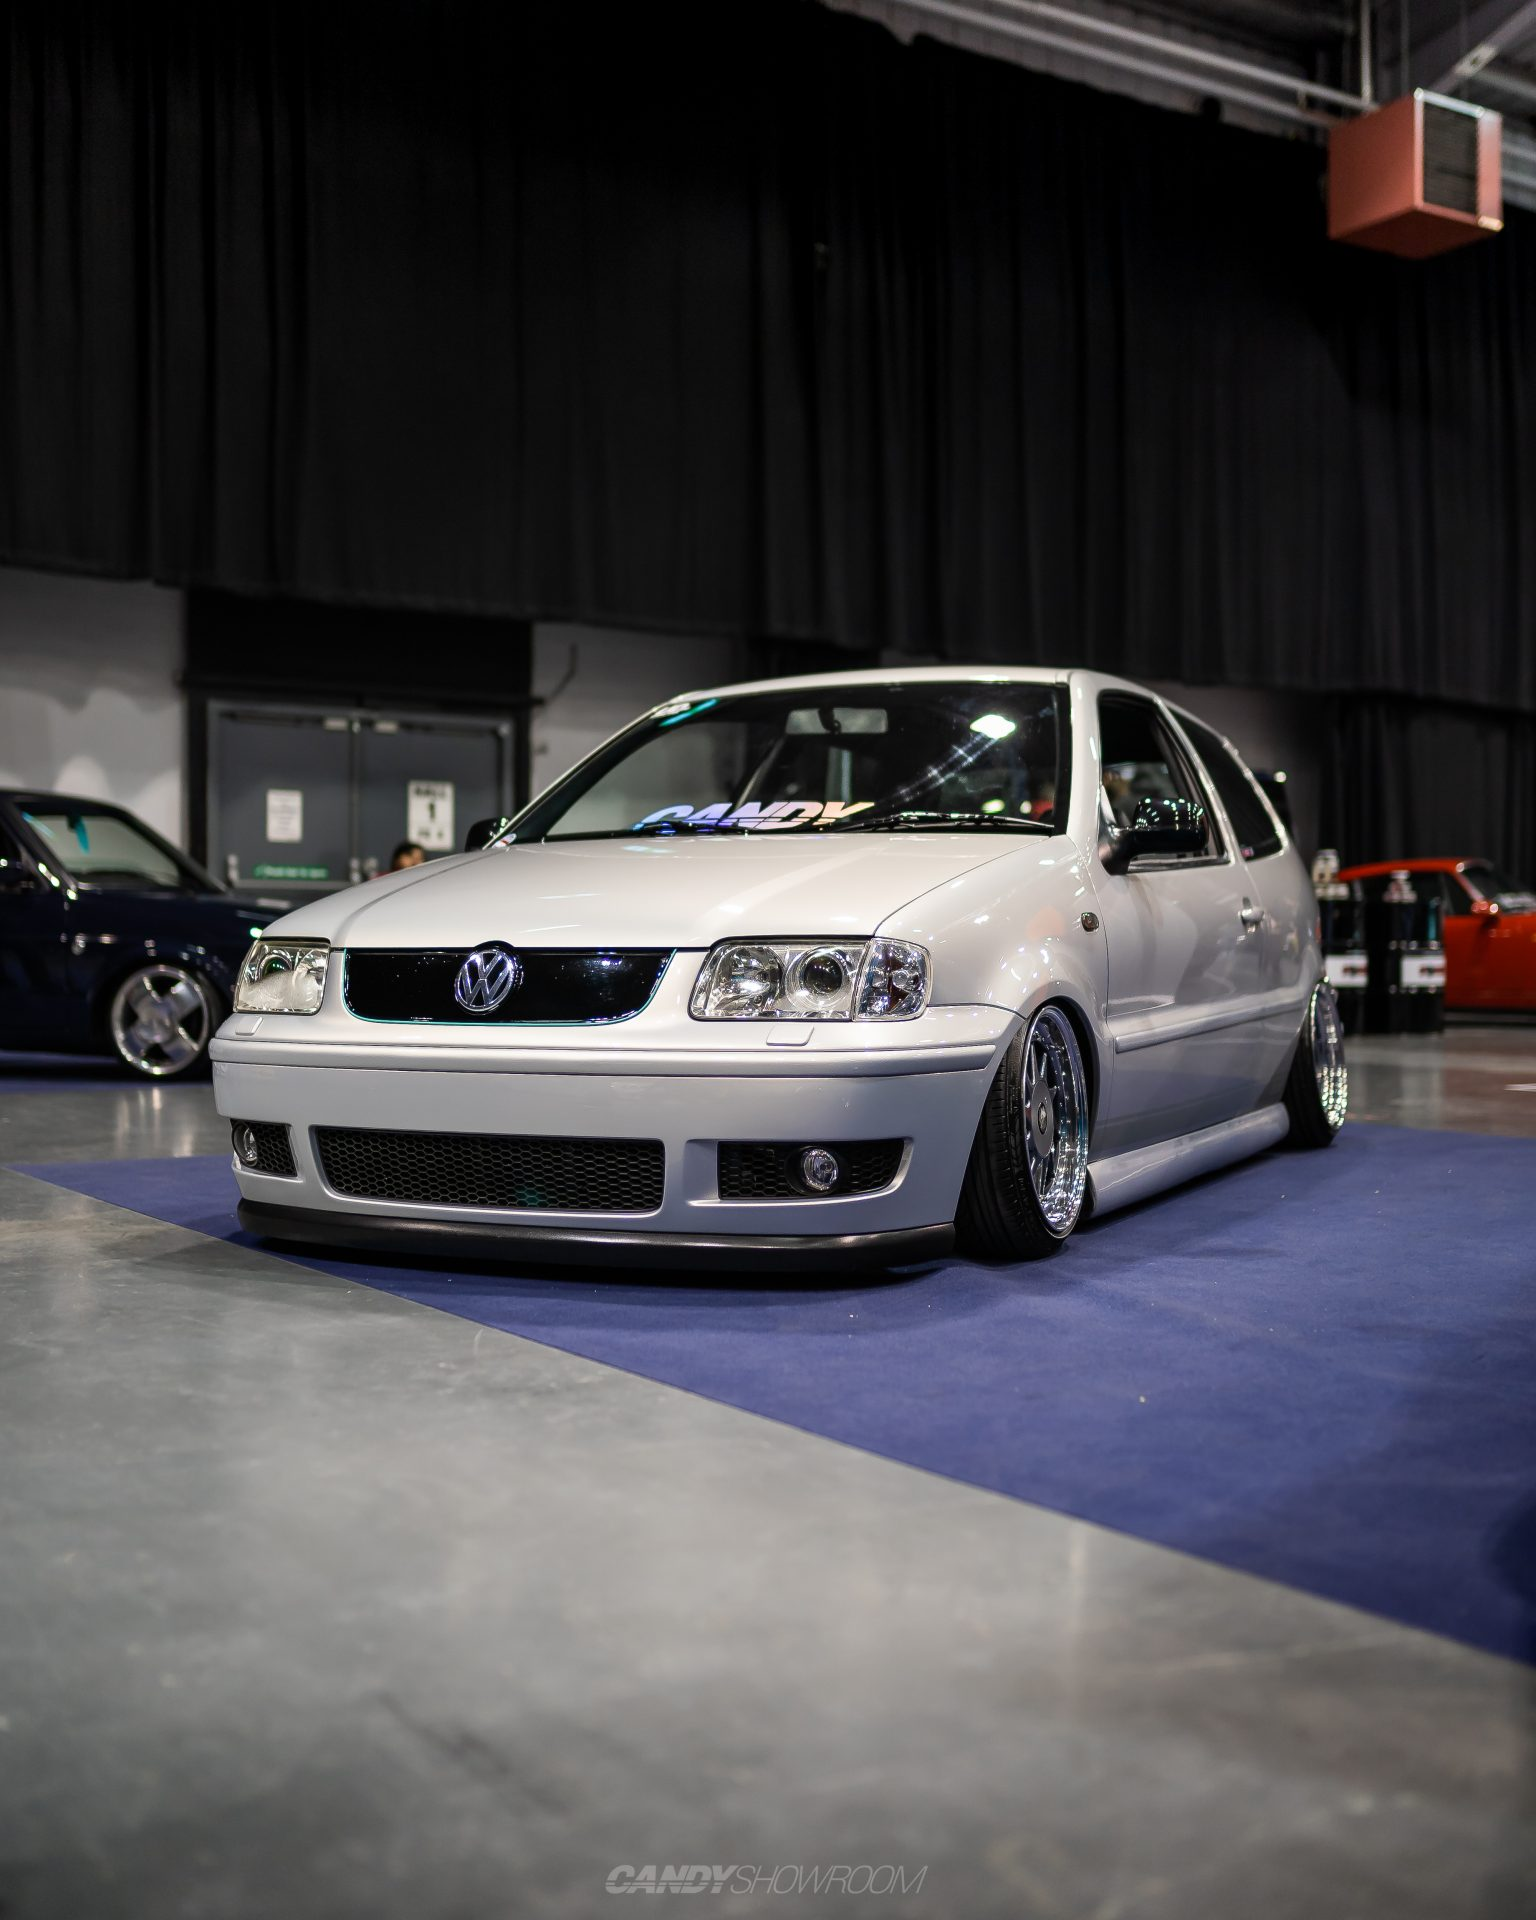 collectivedata.com Sleeper JDM Outline White Decal Sticker Stance ...